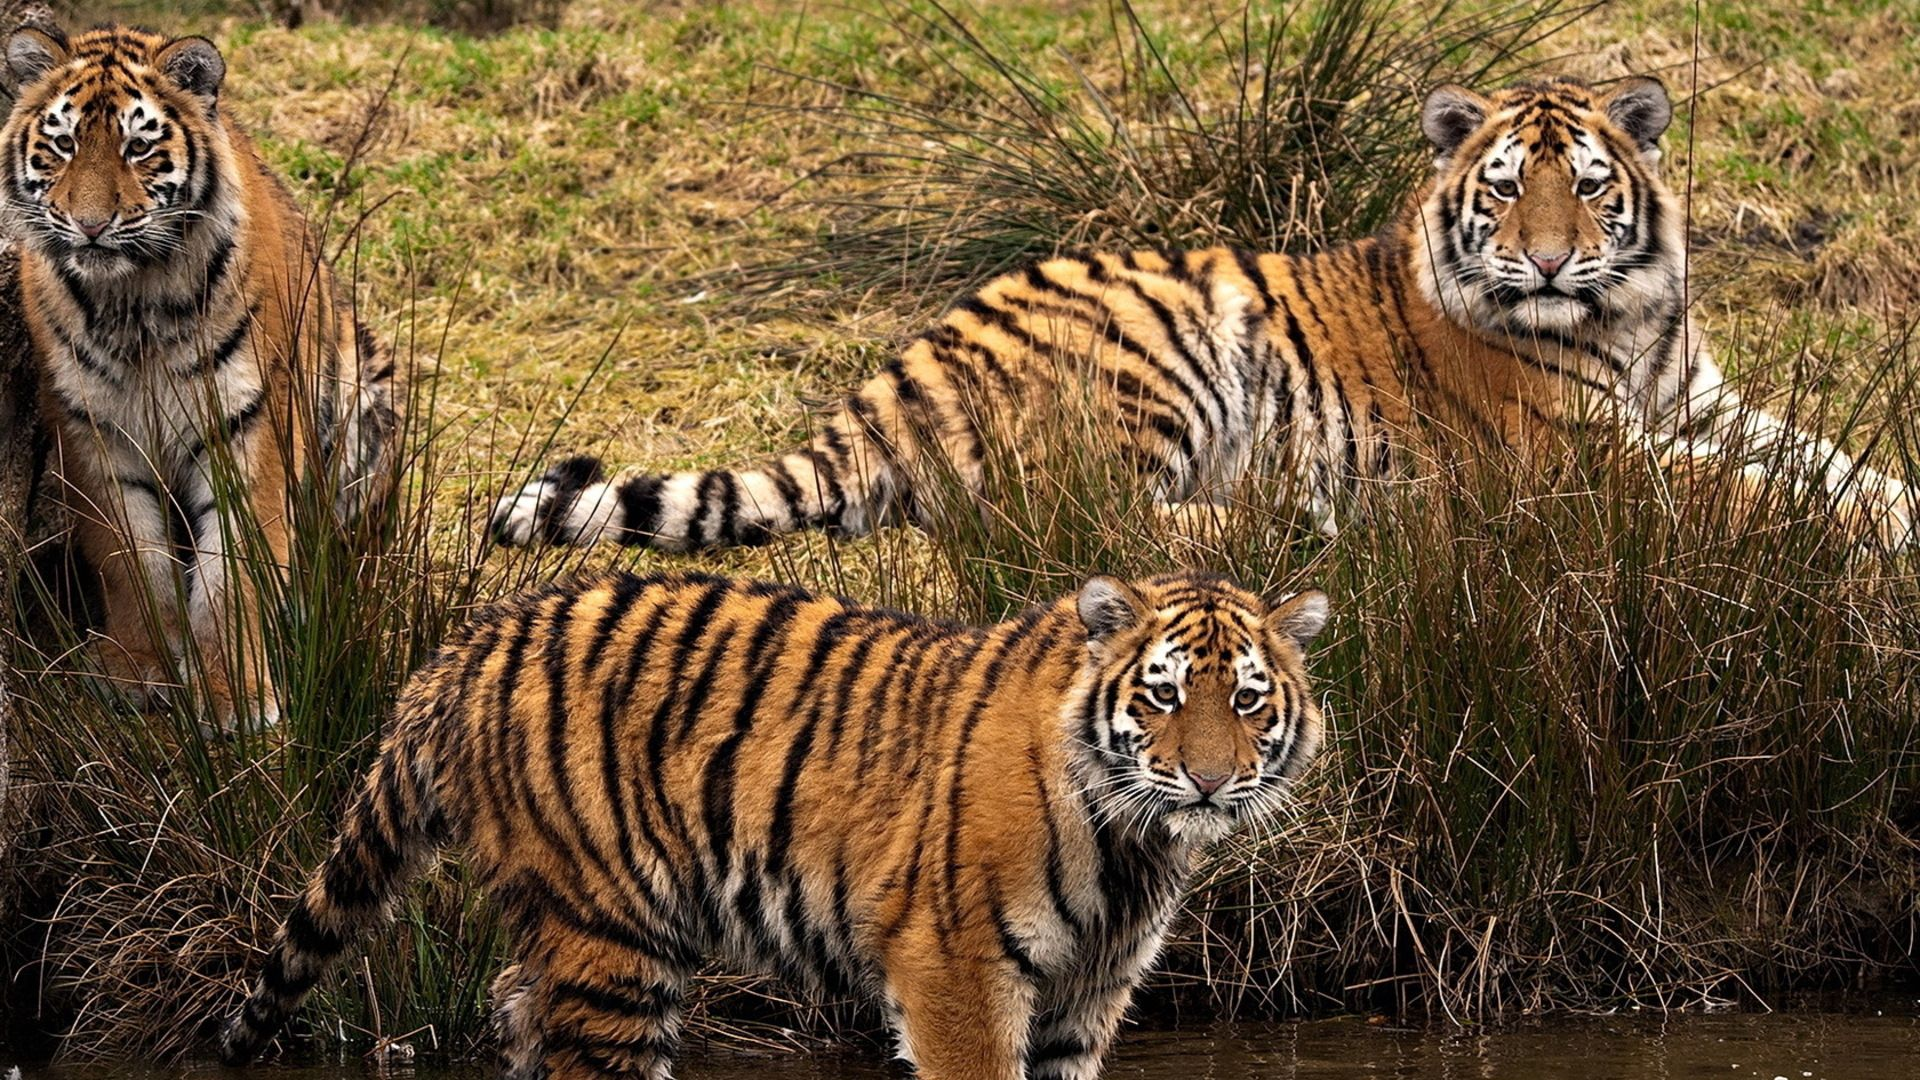 148258 download wallpaper Animals, Three, Grass, Stroll, Predators, Tigers screensavers and pictures for free